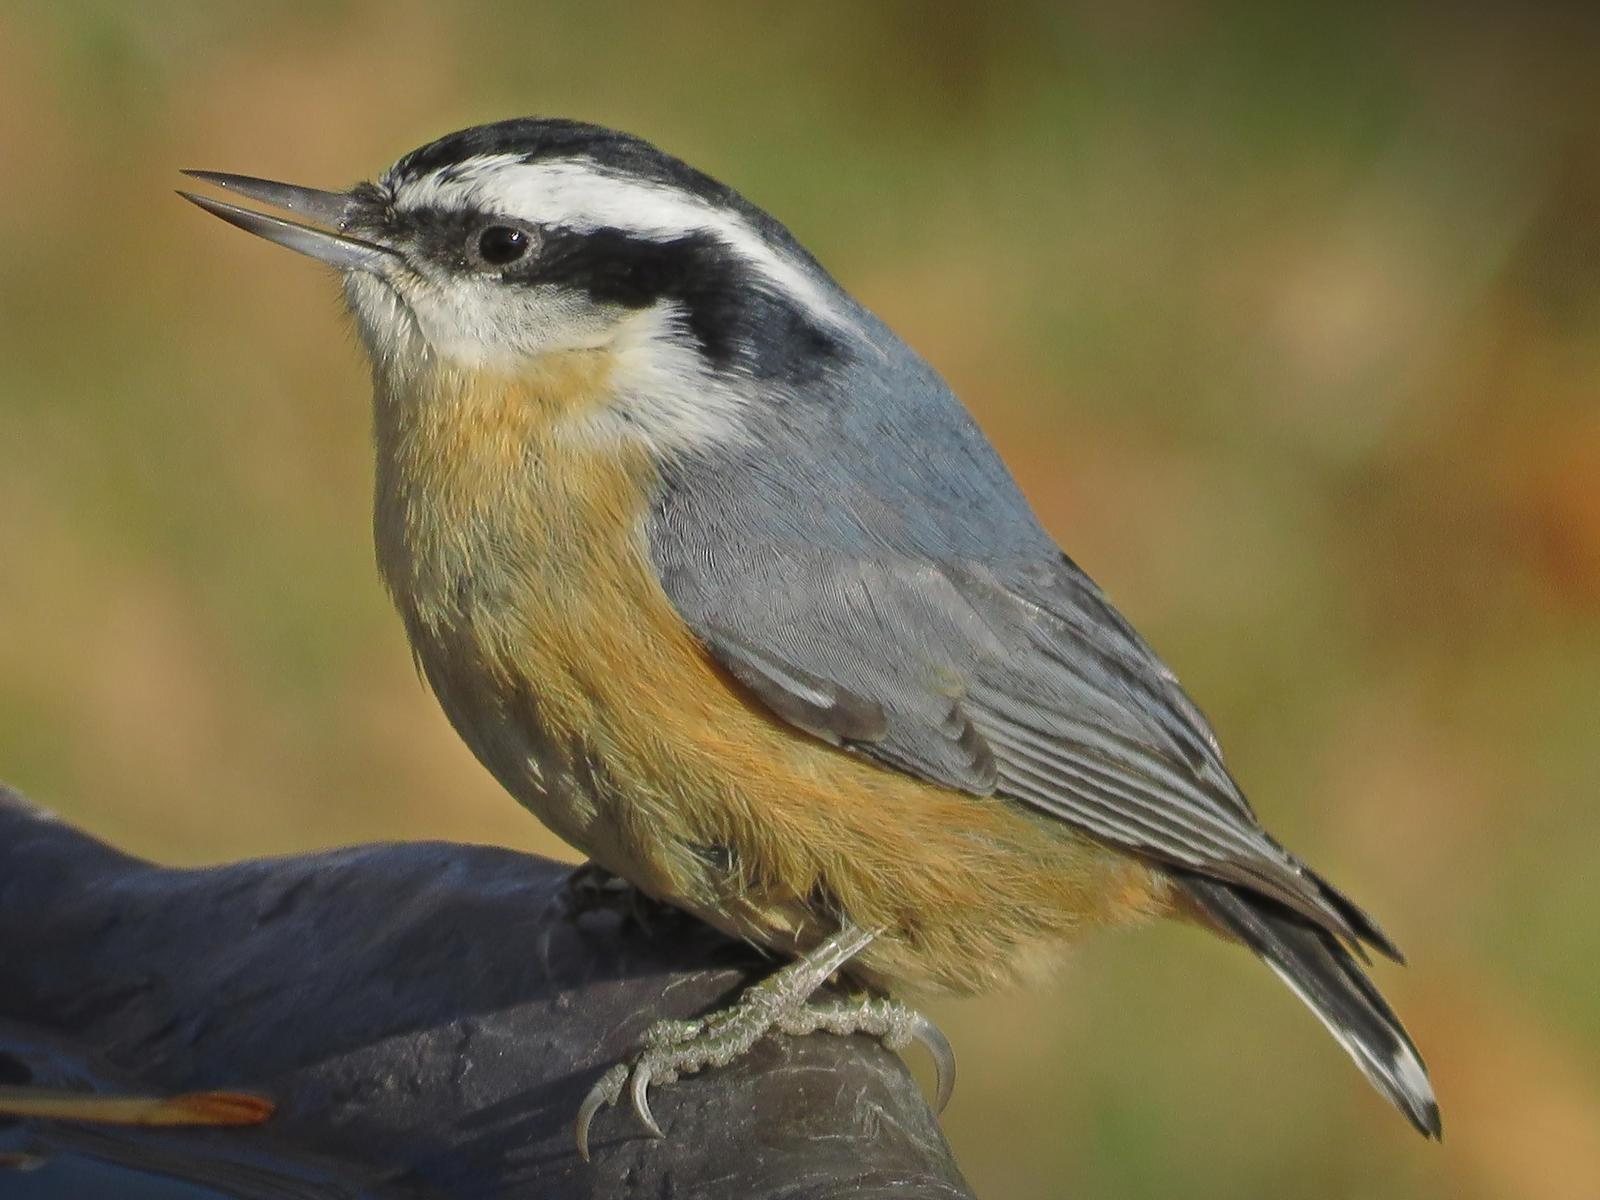 Red-breasted Nuthatch Photo by Bob Neugebauer